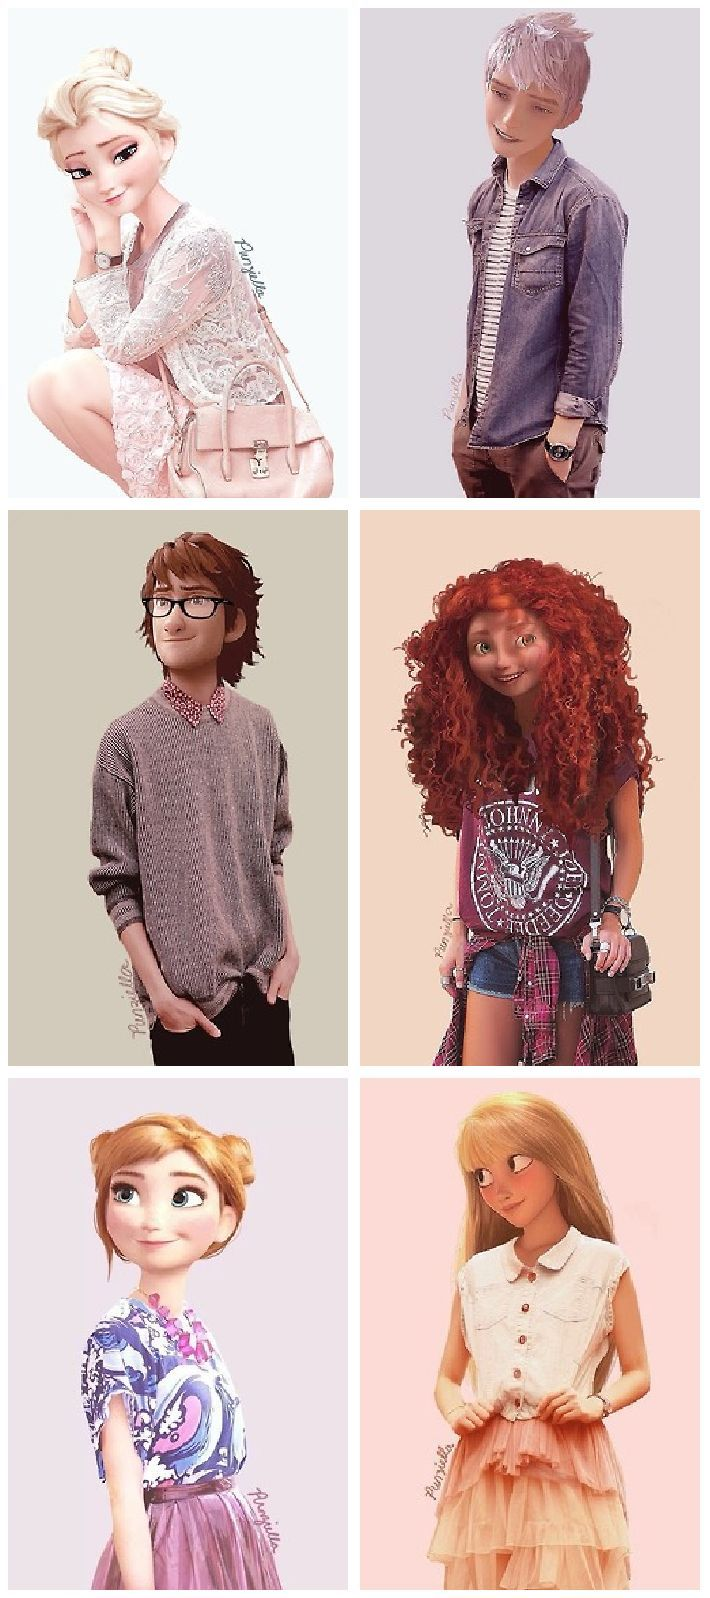 Disney characters in modern clothing